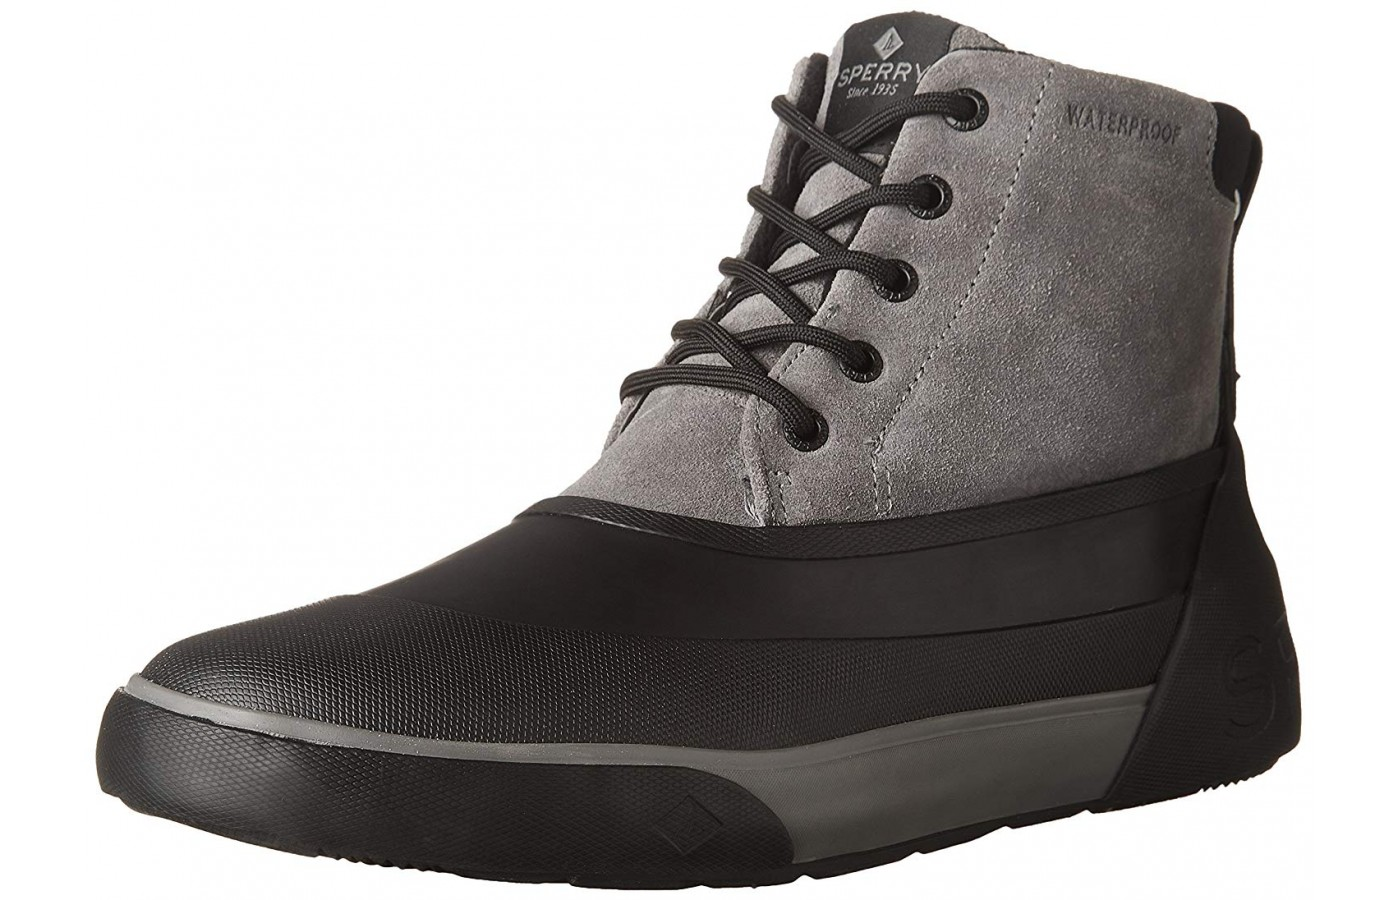 Sperry Cutwater Angled